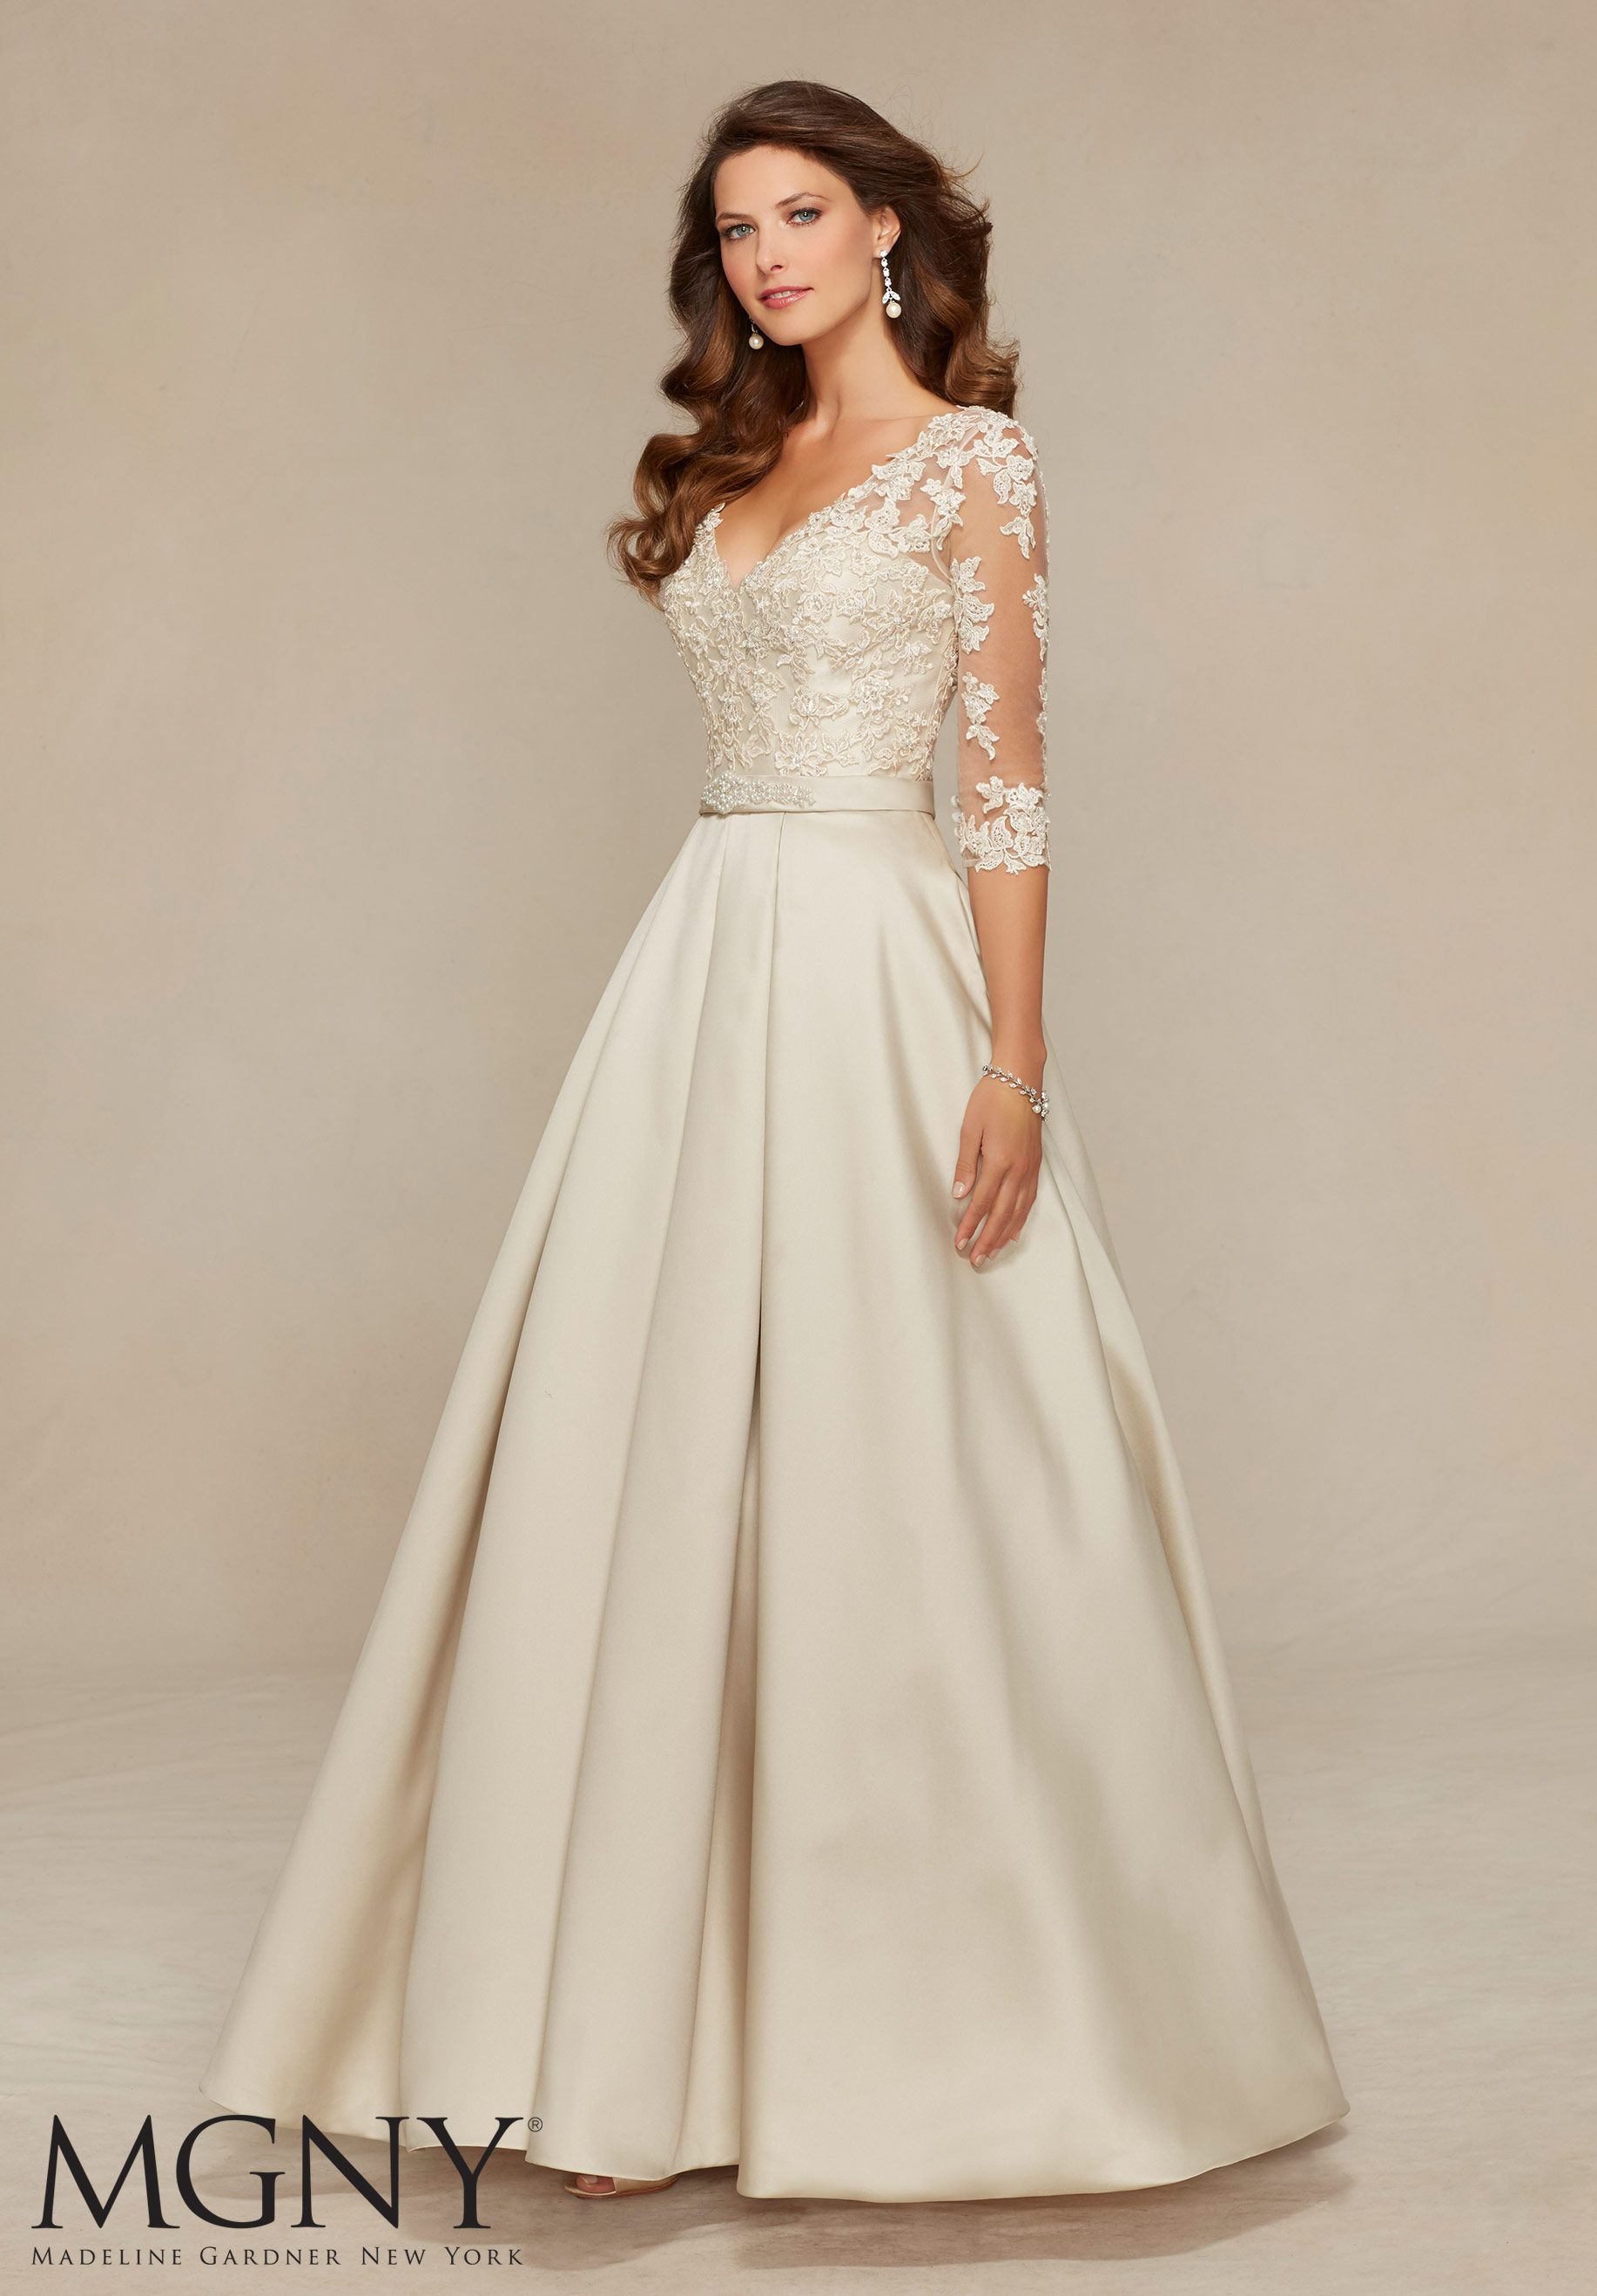 Evening Gowns and Mother of the Bride Dresses by Morilee. Beaded Lace  Appliqués on Larissa Satin Evening Gown 9bfe880429